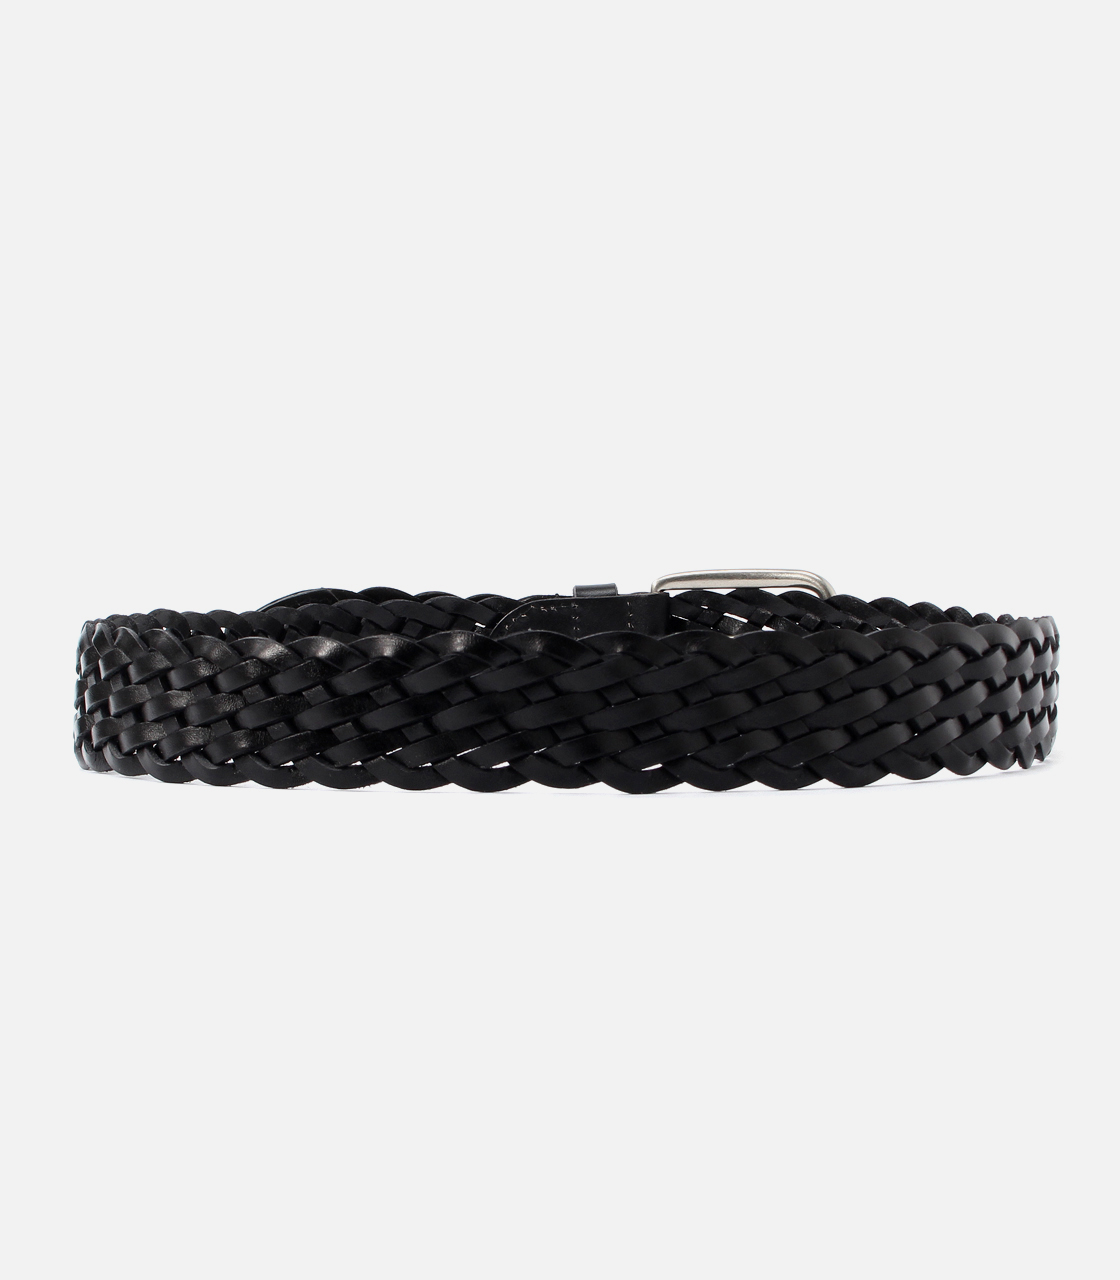 MESH LEATHER BELT 詳細画像 BLK 3